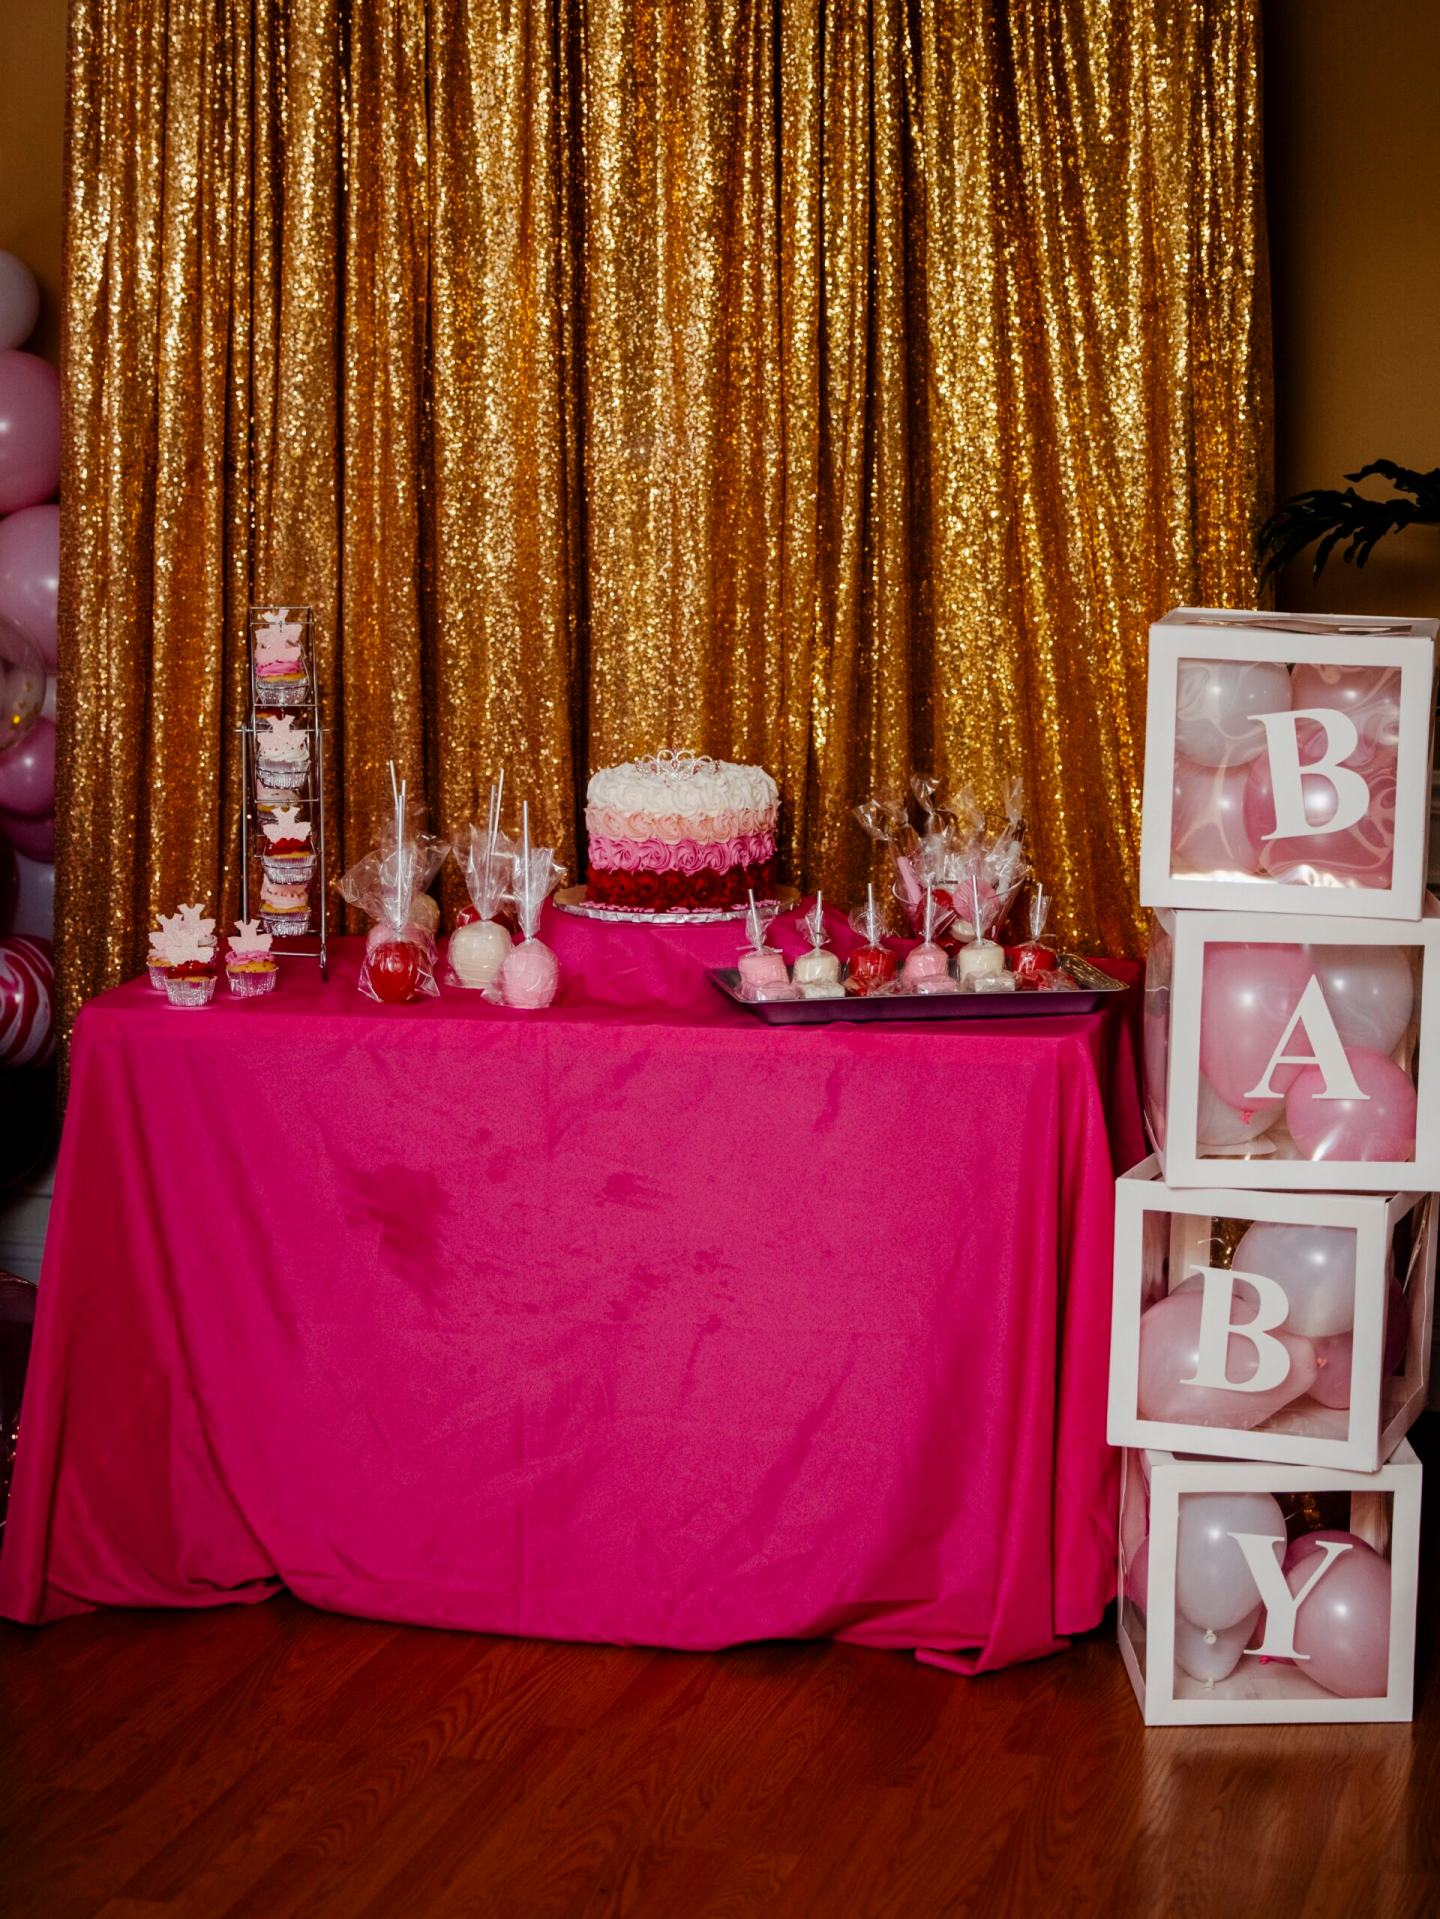 Tutu and Tiara Themed Baby Shower